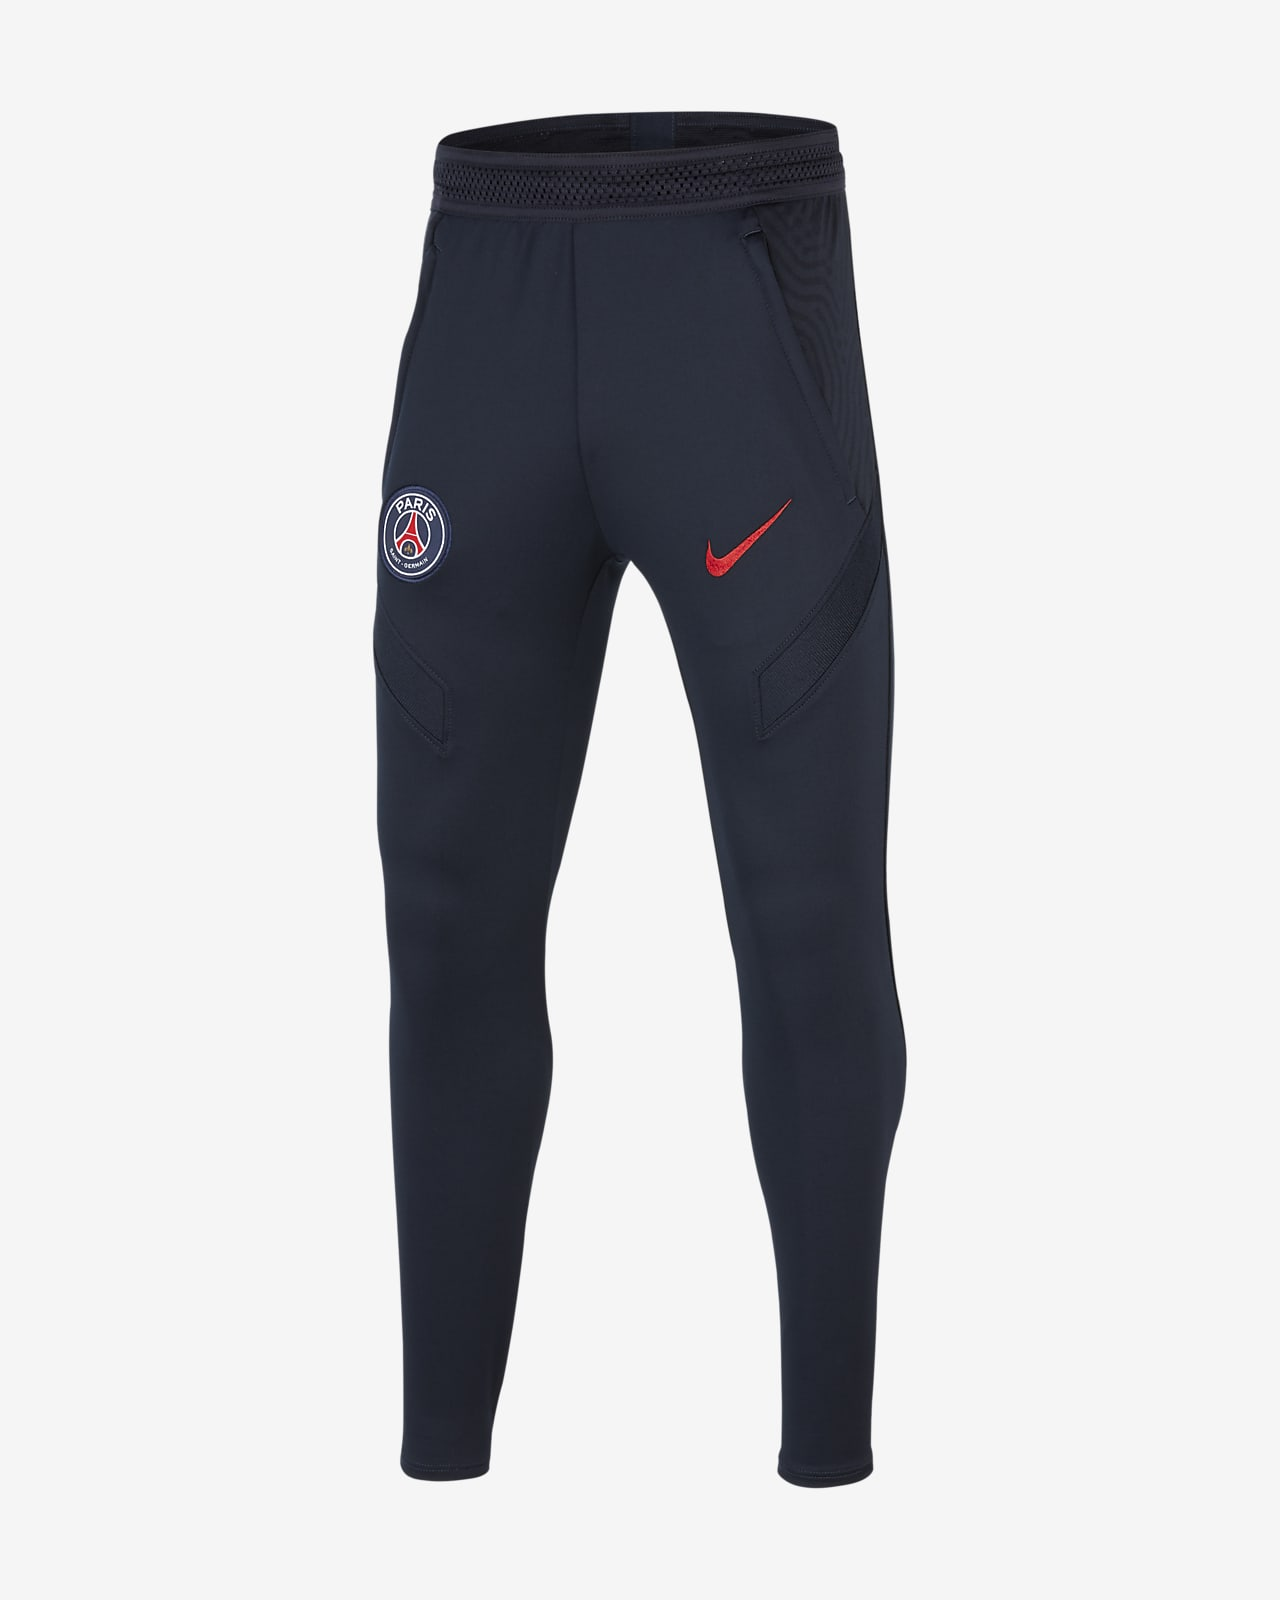 Paris Saint-Germain Strike Older Kids' Football Pants